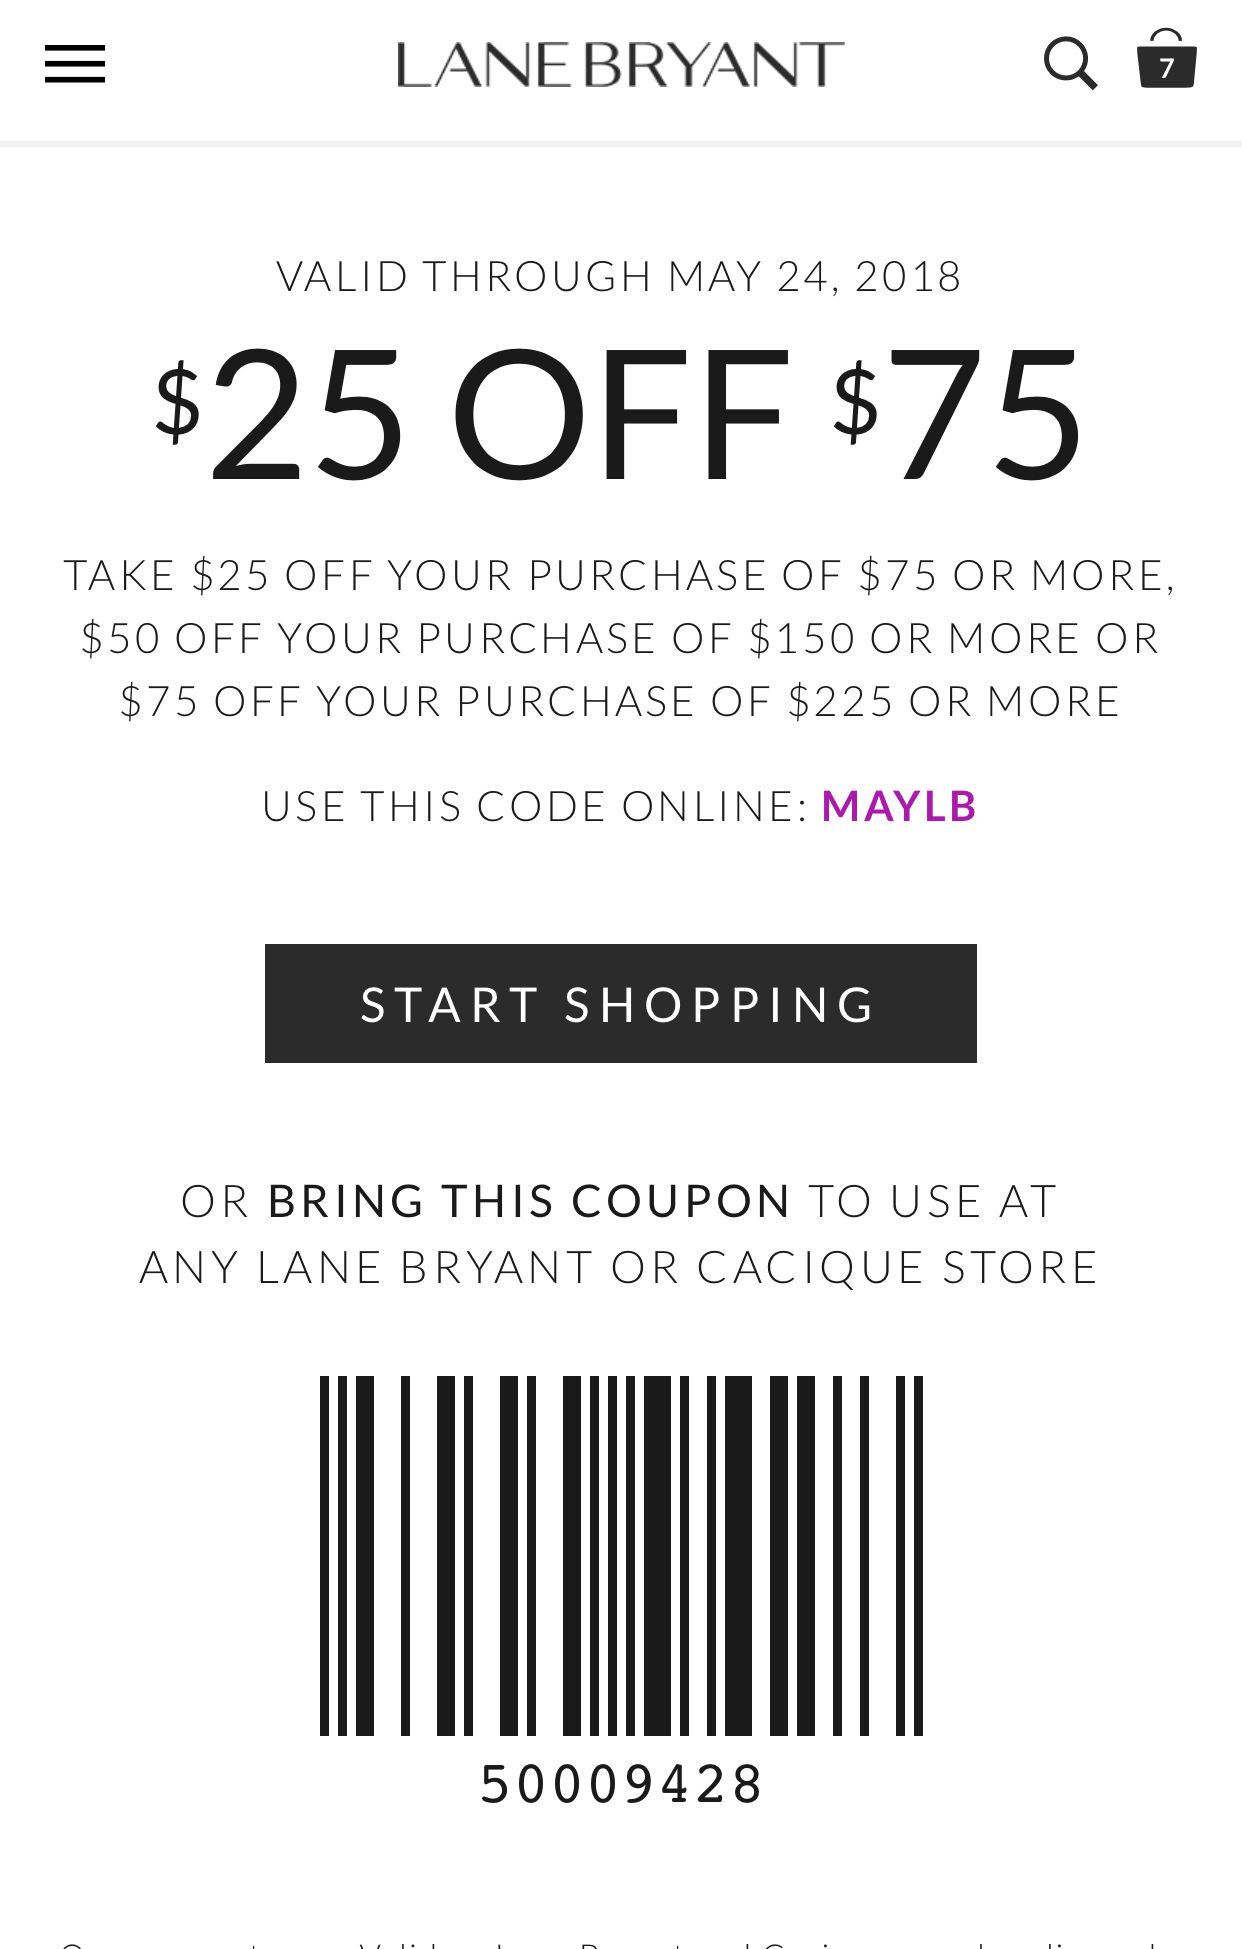 afbf9e5781f6 Up To $75 Off With Minimum Purchase Printable Coupons, Lane Bryant, Home  Goods